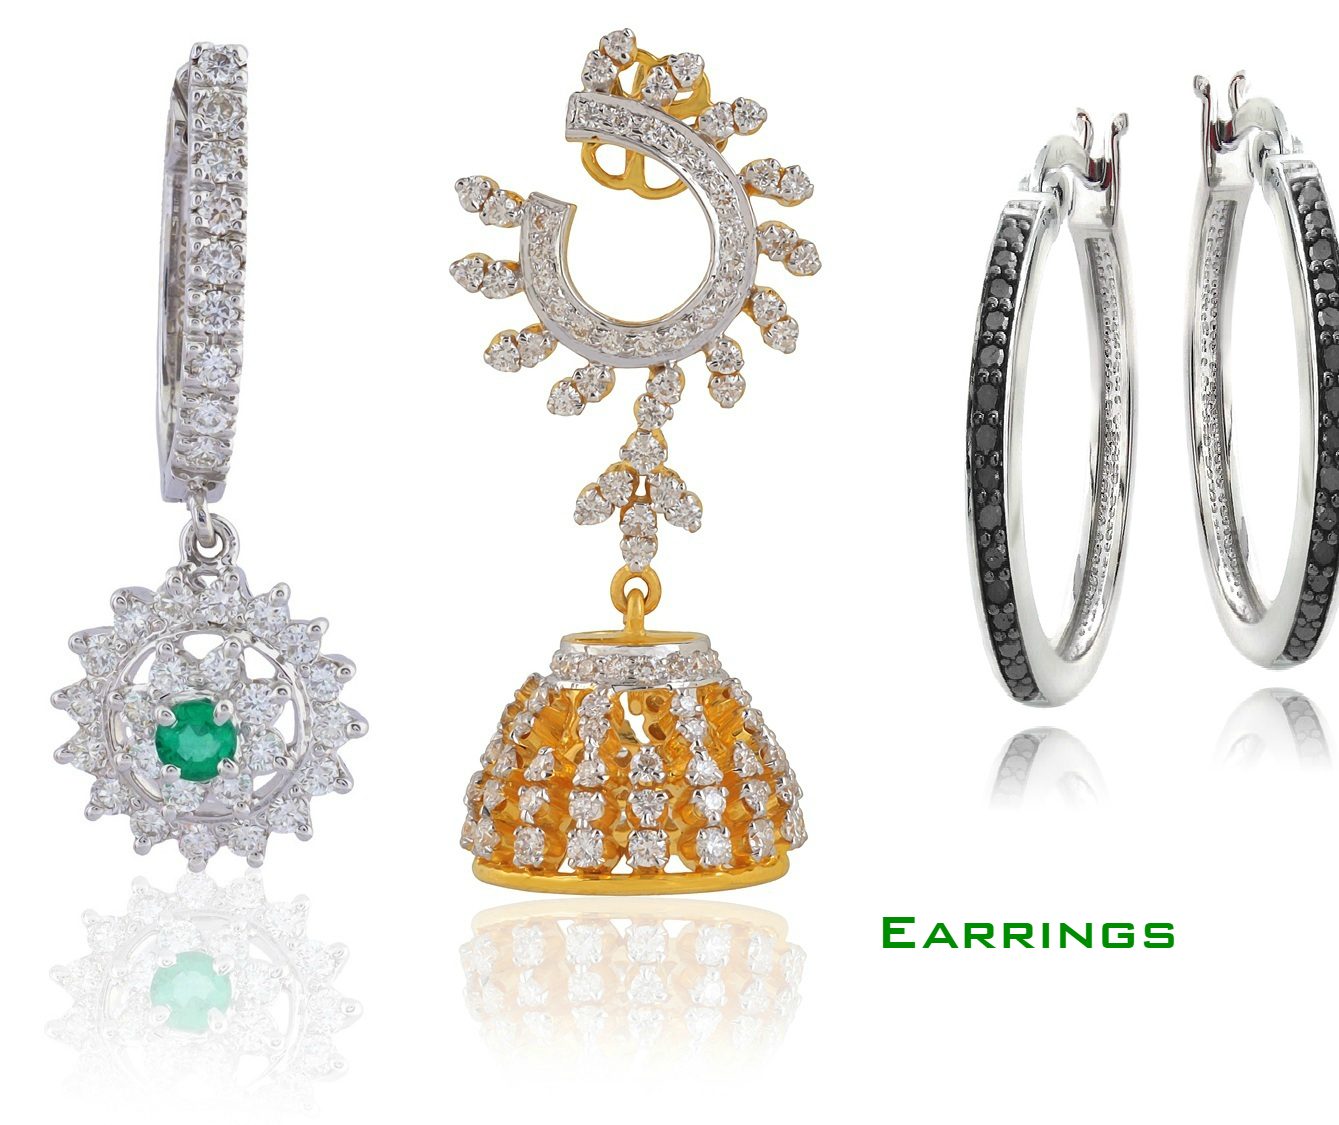 Find A Pair Of Hoop Earrings That Is Round, Short, And A Solid Metal Such  As Sterling Silver Or Gold For Those Who Like Jewelry Very Much, Choose  Designs